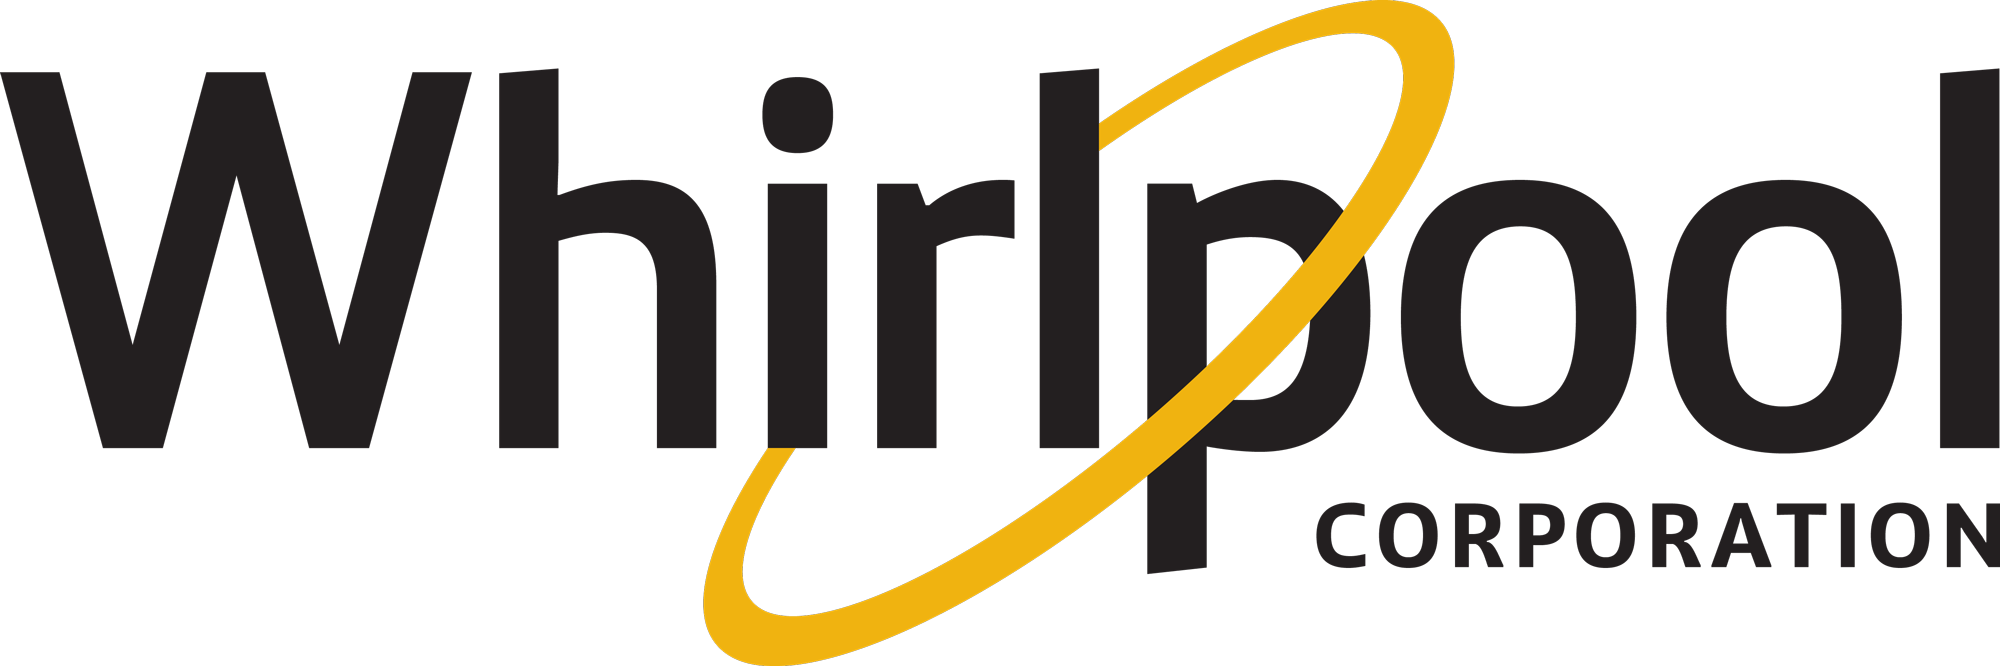 http://bodrumservisiniz.com/wp-content/uploads/2017/03/WhirlpoolCorp-2017Logo_2C_B.png